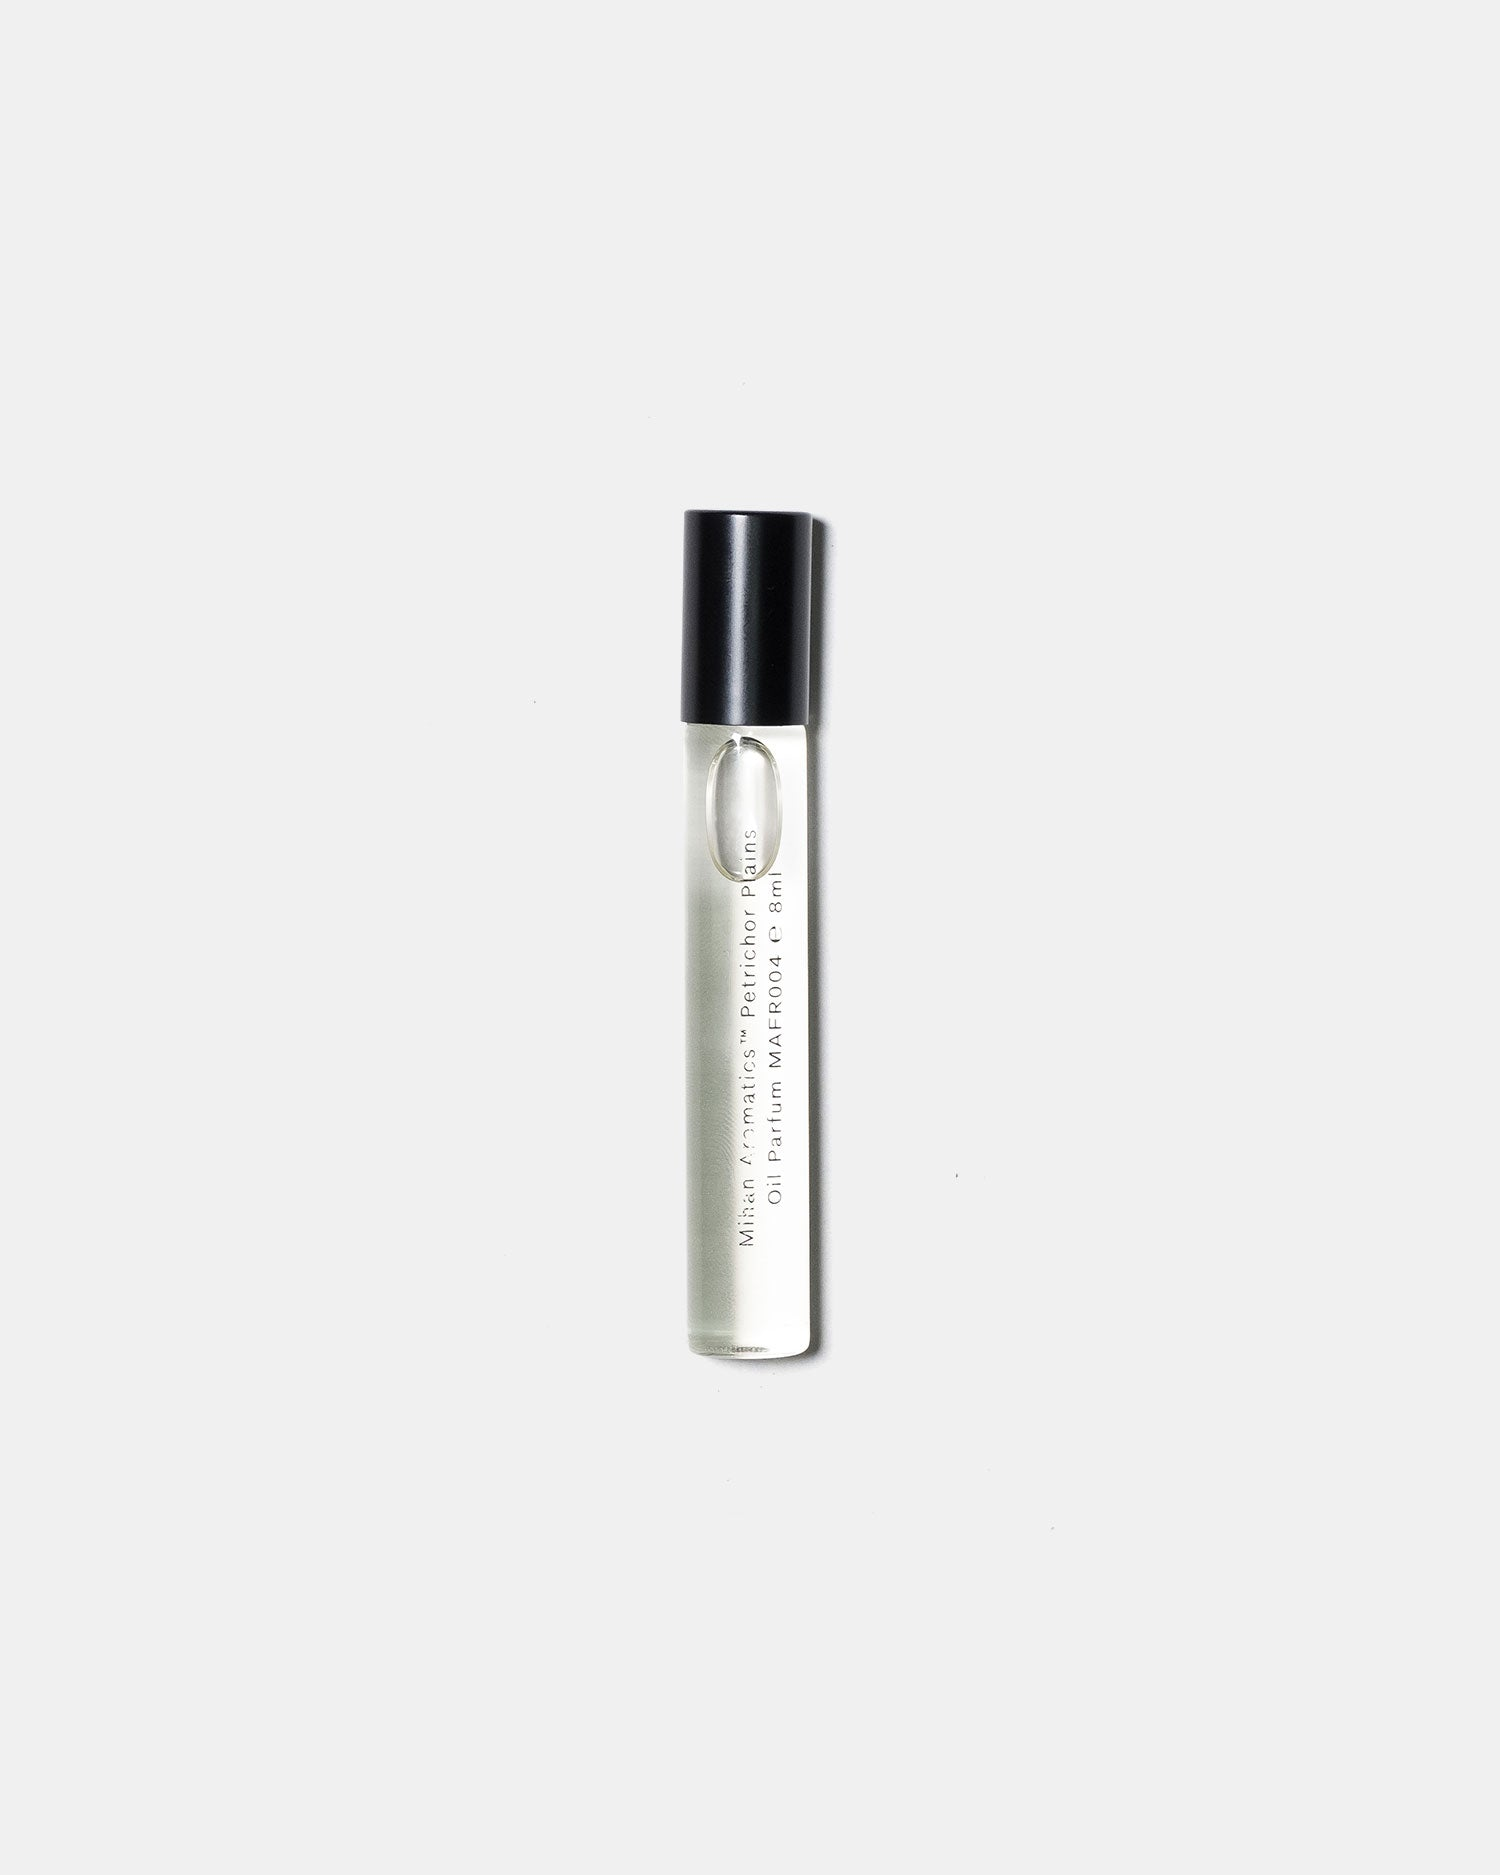 Mihan Aromatics Oil Parfum - Petrichor Plains